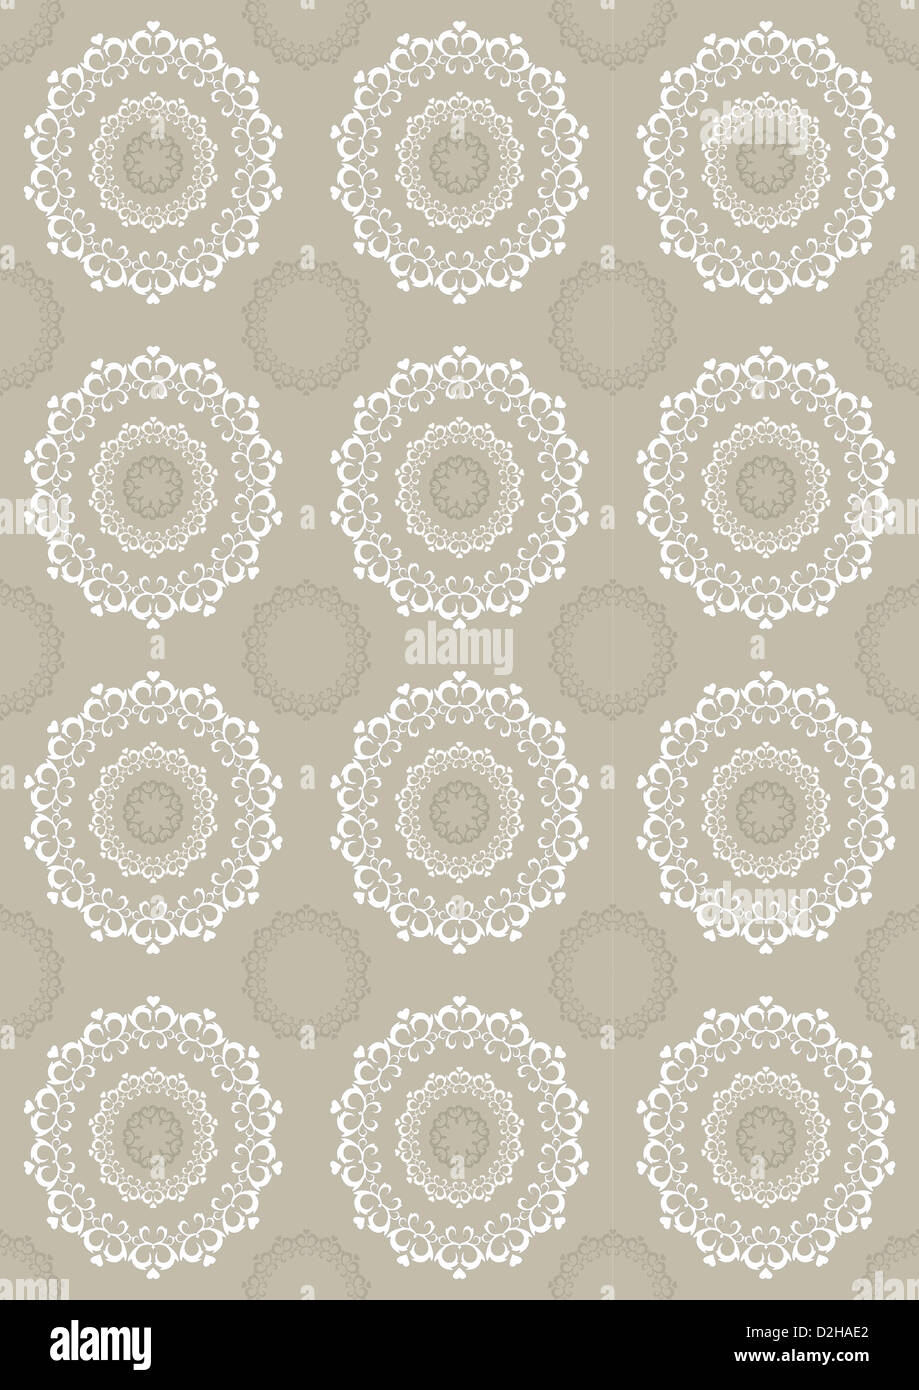 Light beige background with openwork circles - Stock Image